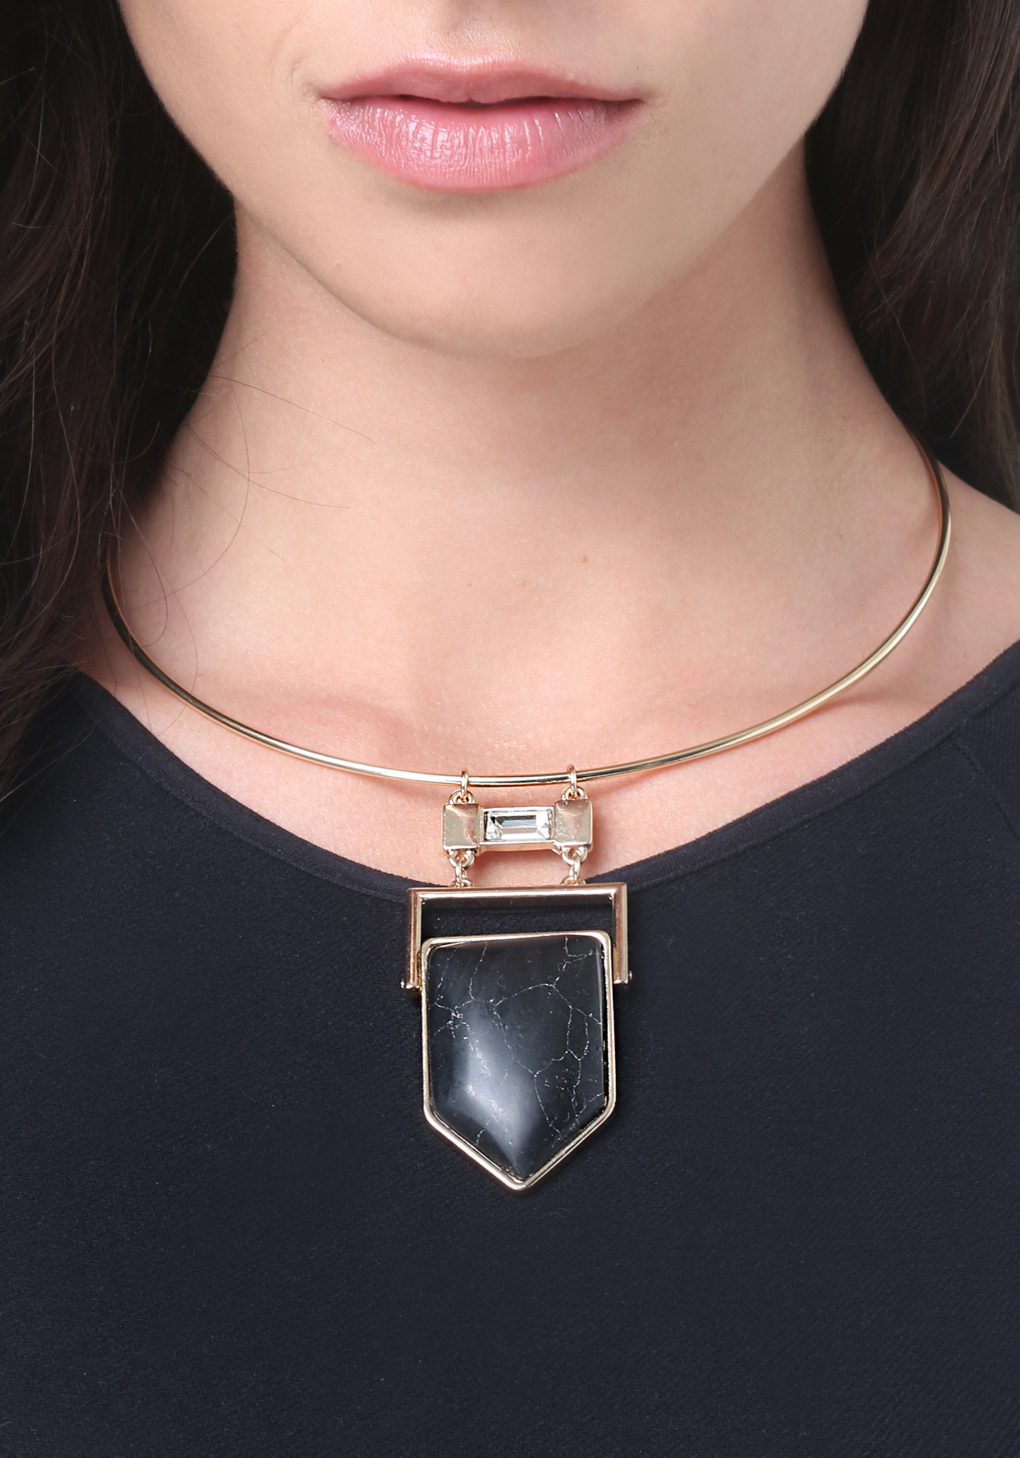 Bebe Black Geo Stone Necklace in Black/Gold (Metallic)